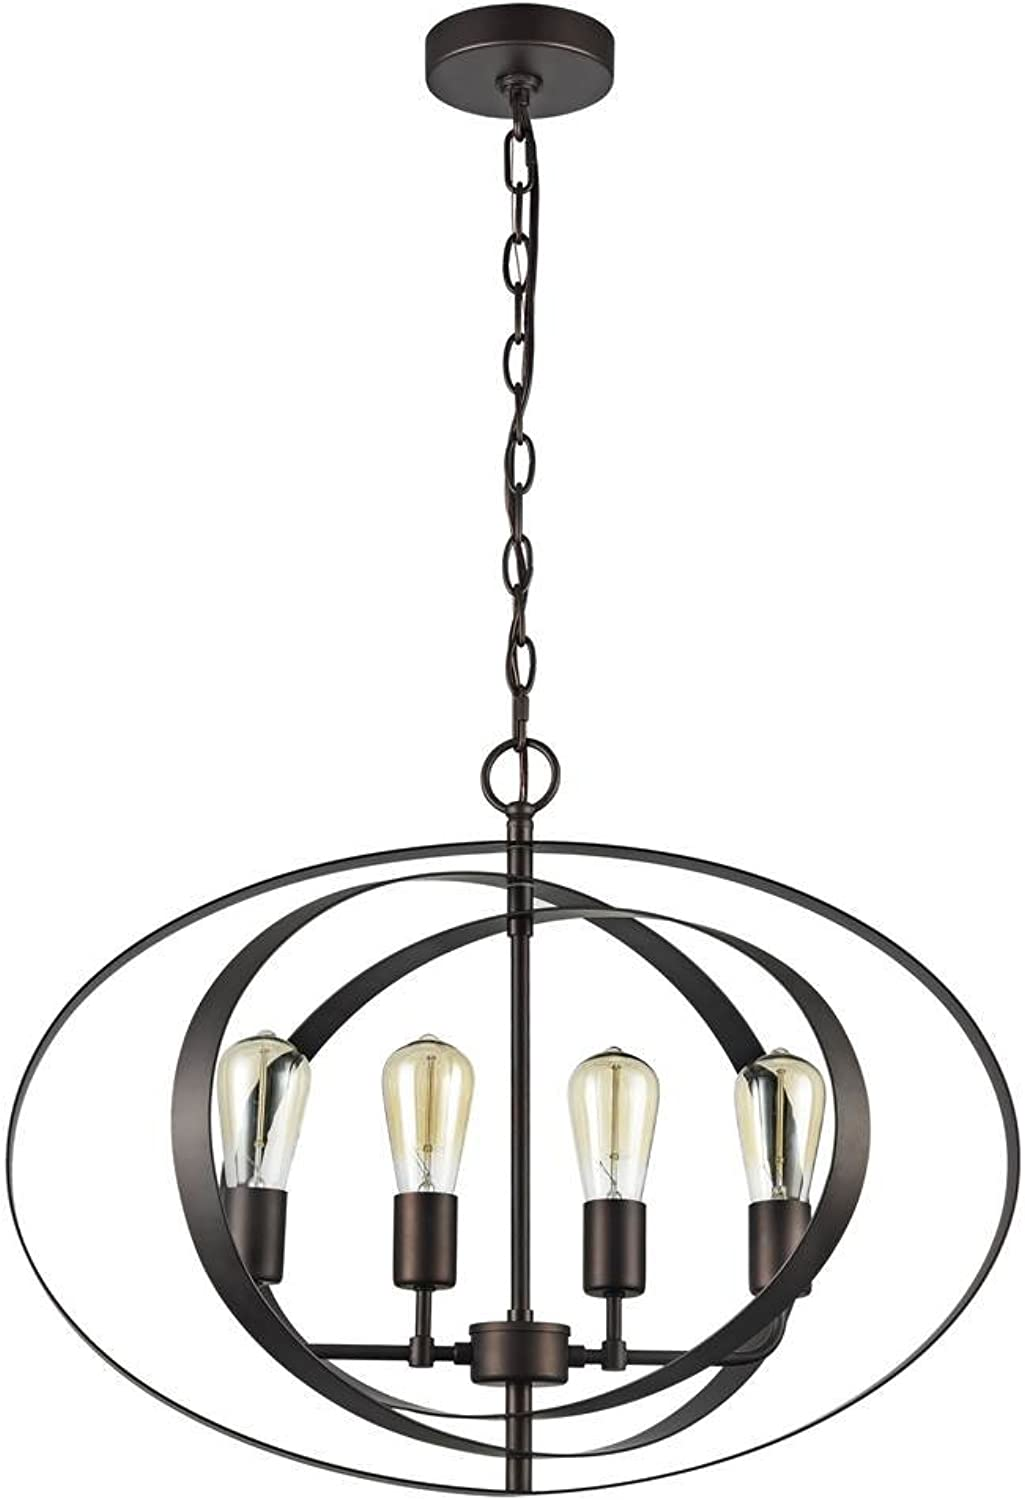 Chloe Lighting CH59073RB24-UP4 24  Osbert Industrial-Style 4 Light Ceiling Pendant, One Size, Rubbed Bronze